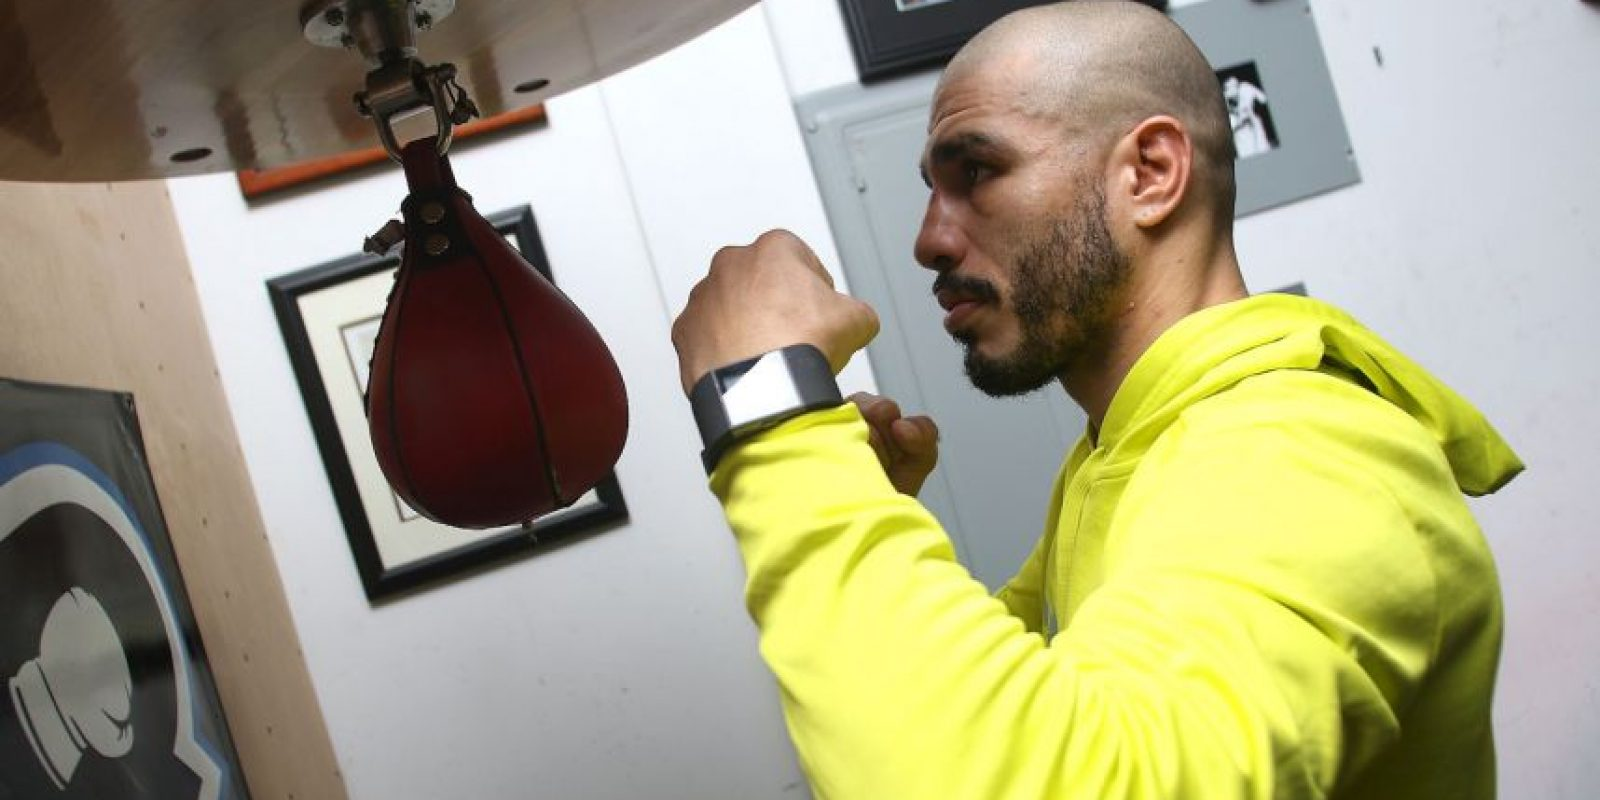 10. Cotto estuvo invicto por 32 peleas, hasta que cayó con Antonio Margarito en 2008 Foto: Getty Images